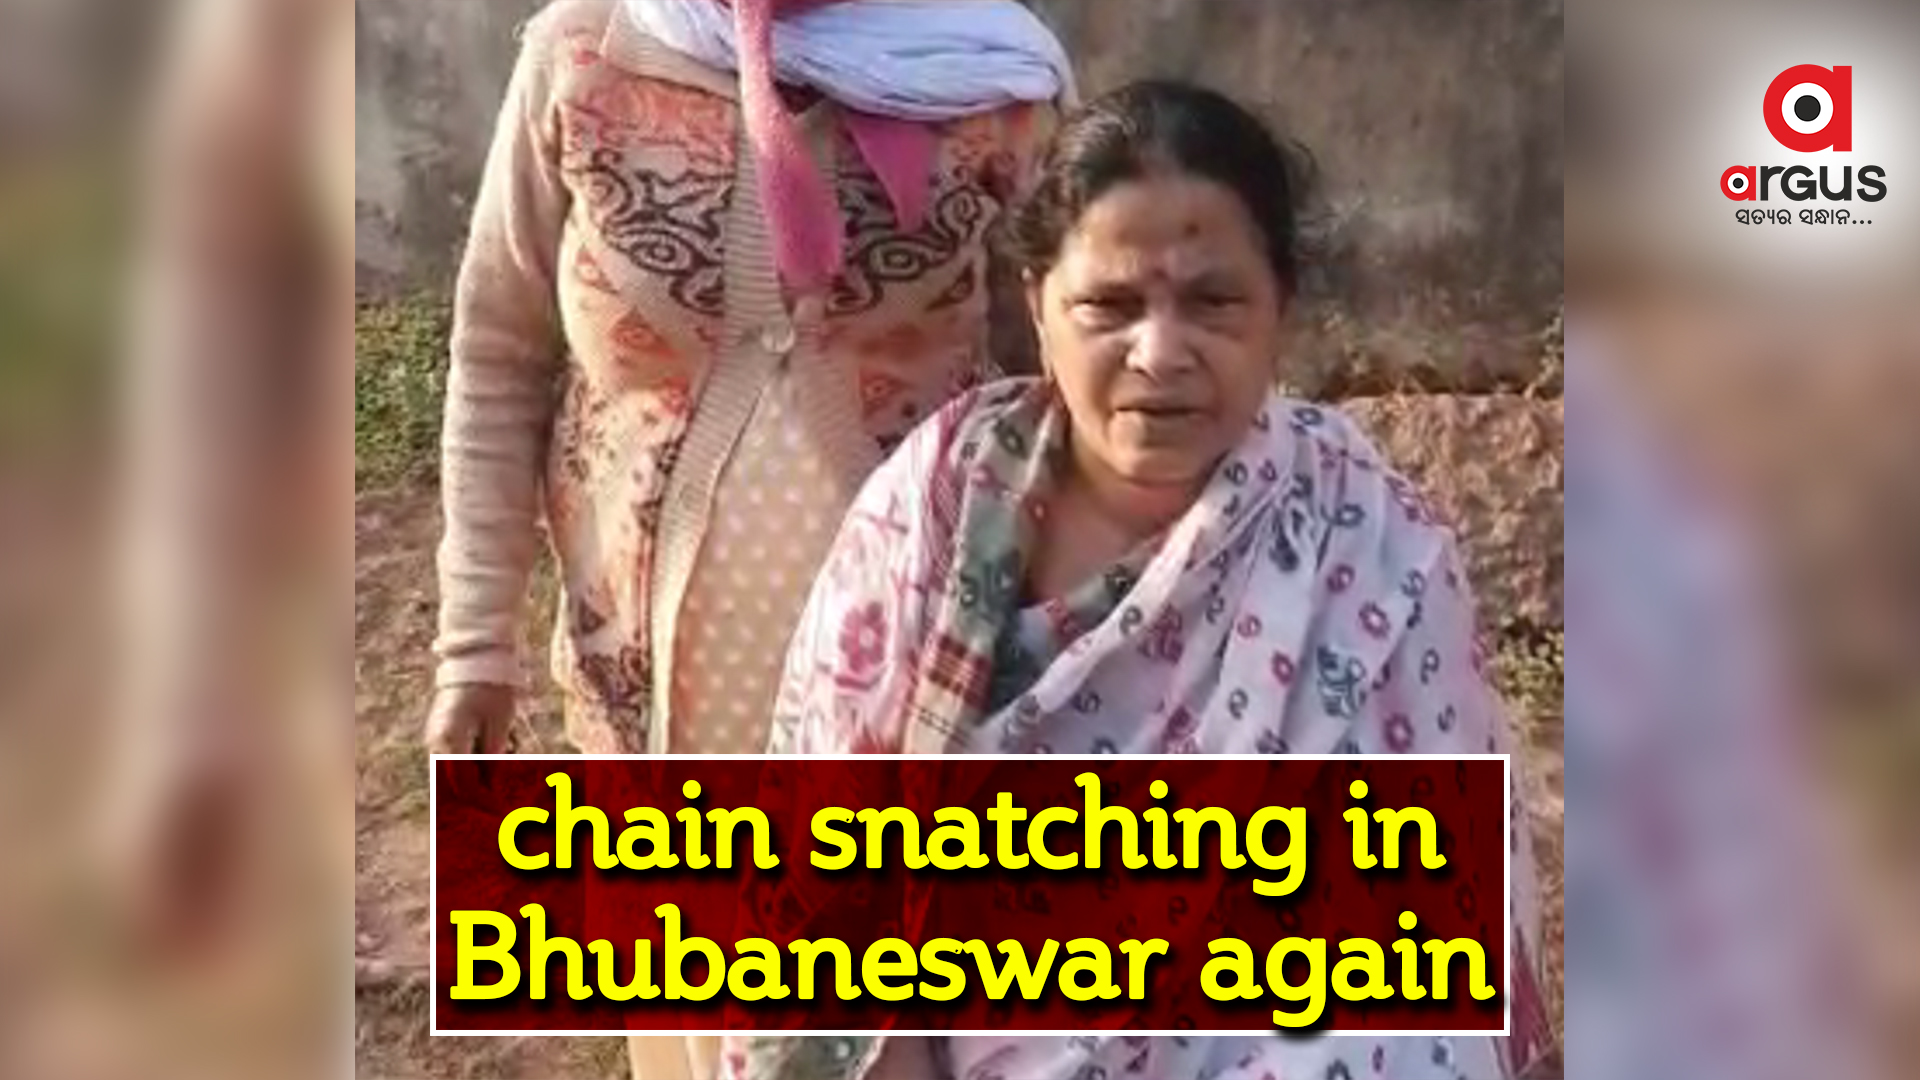 Miscreants snatch gold necklace of woman in Bhubaneswar